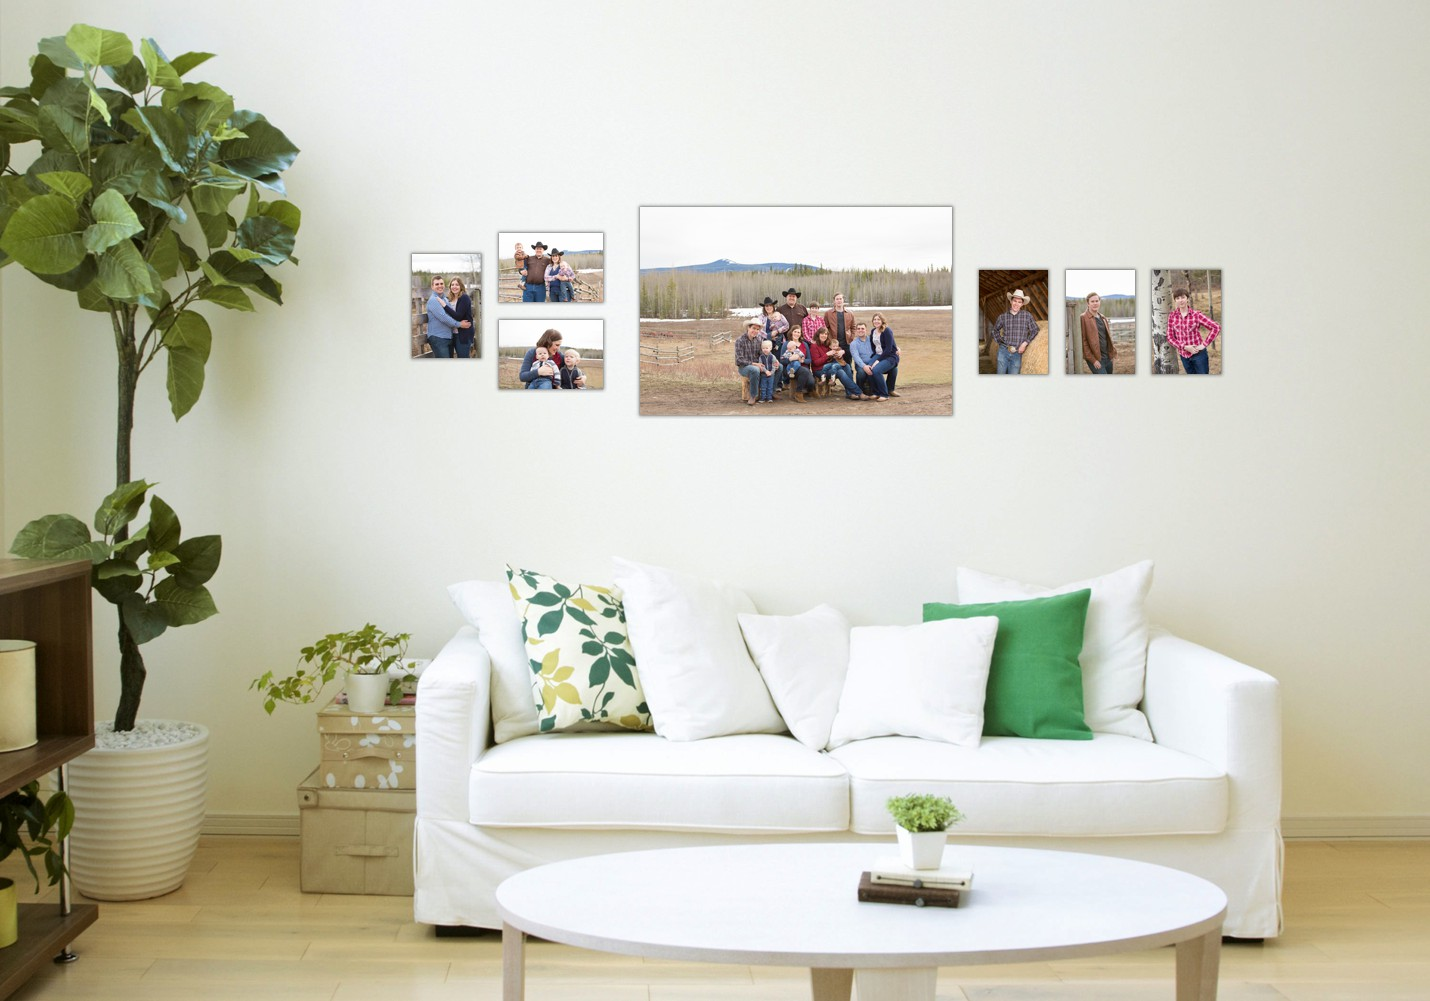 I can show you how you images will look in your home!